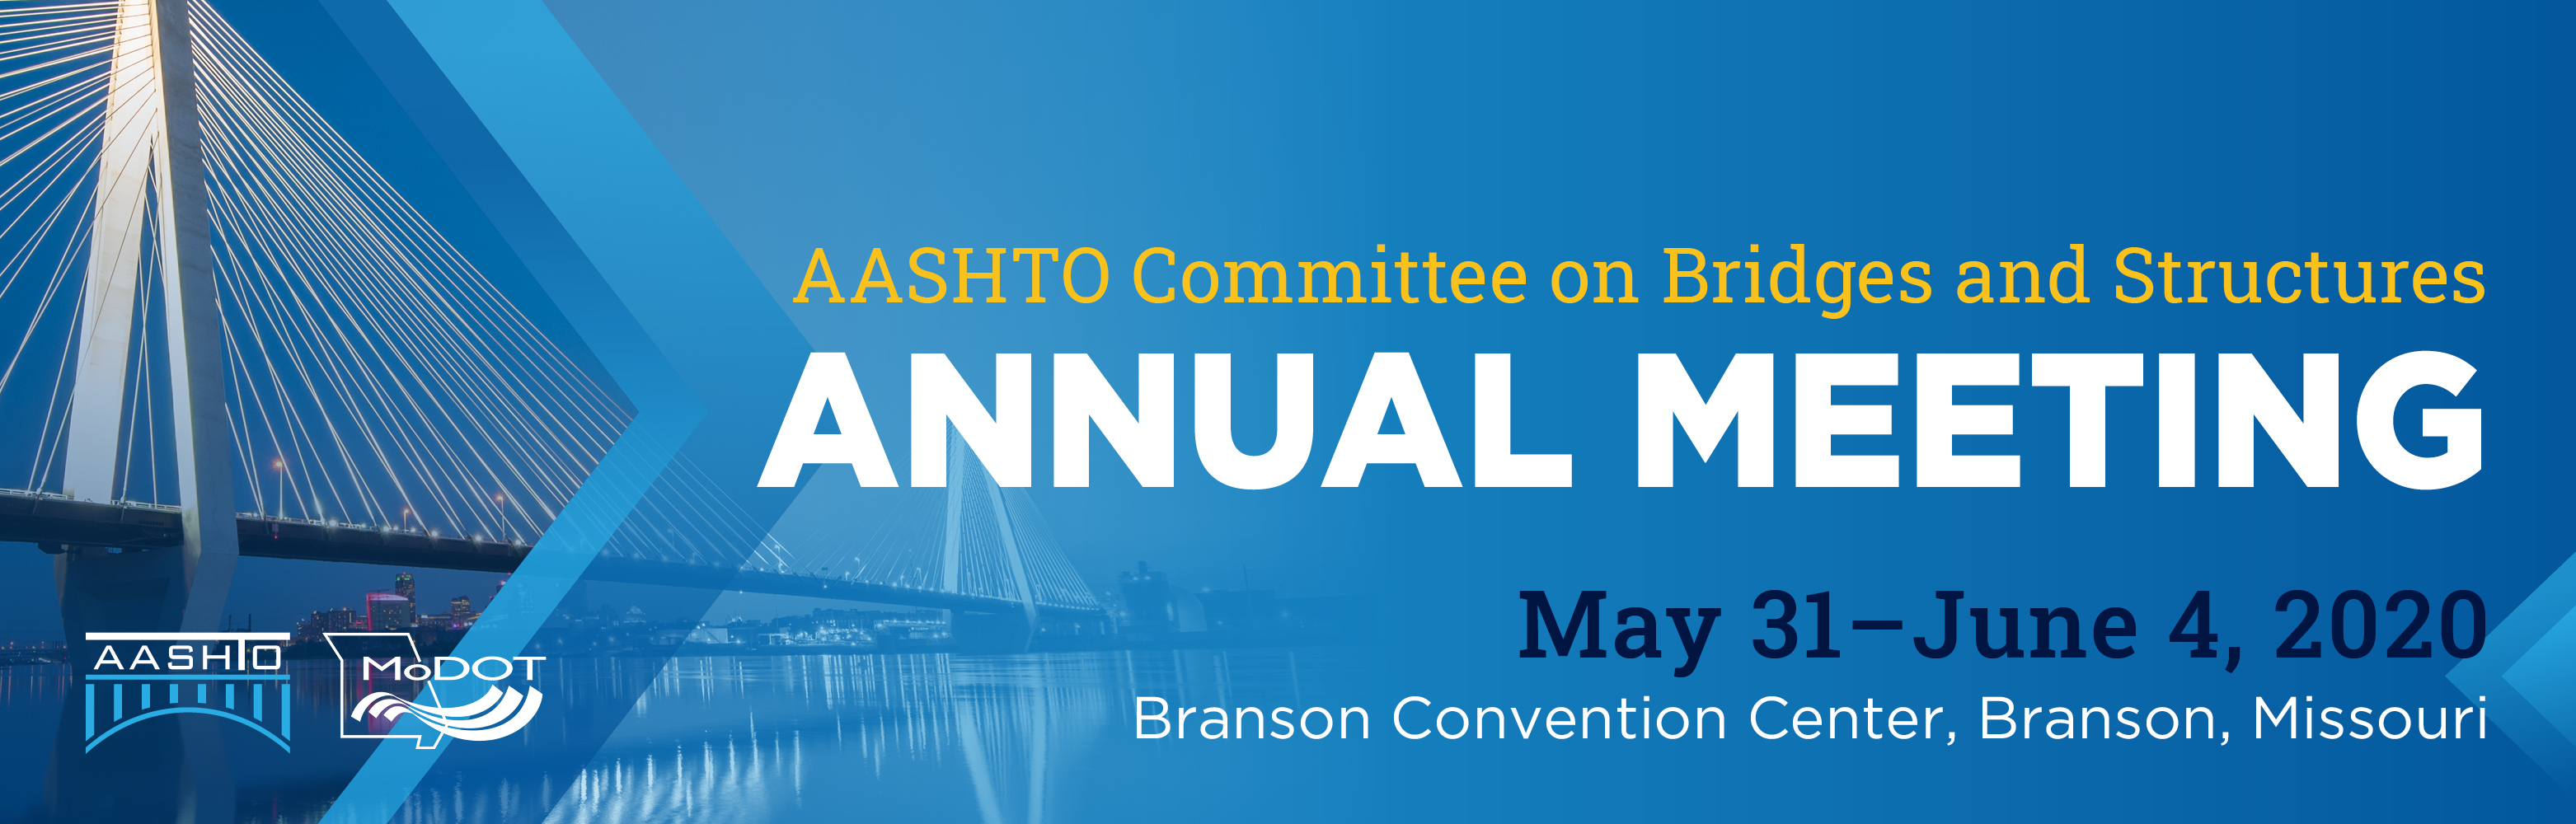 2020 AASHTO Committee on Bridges and Structures